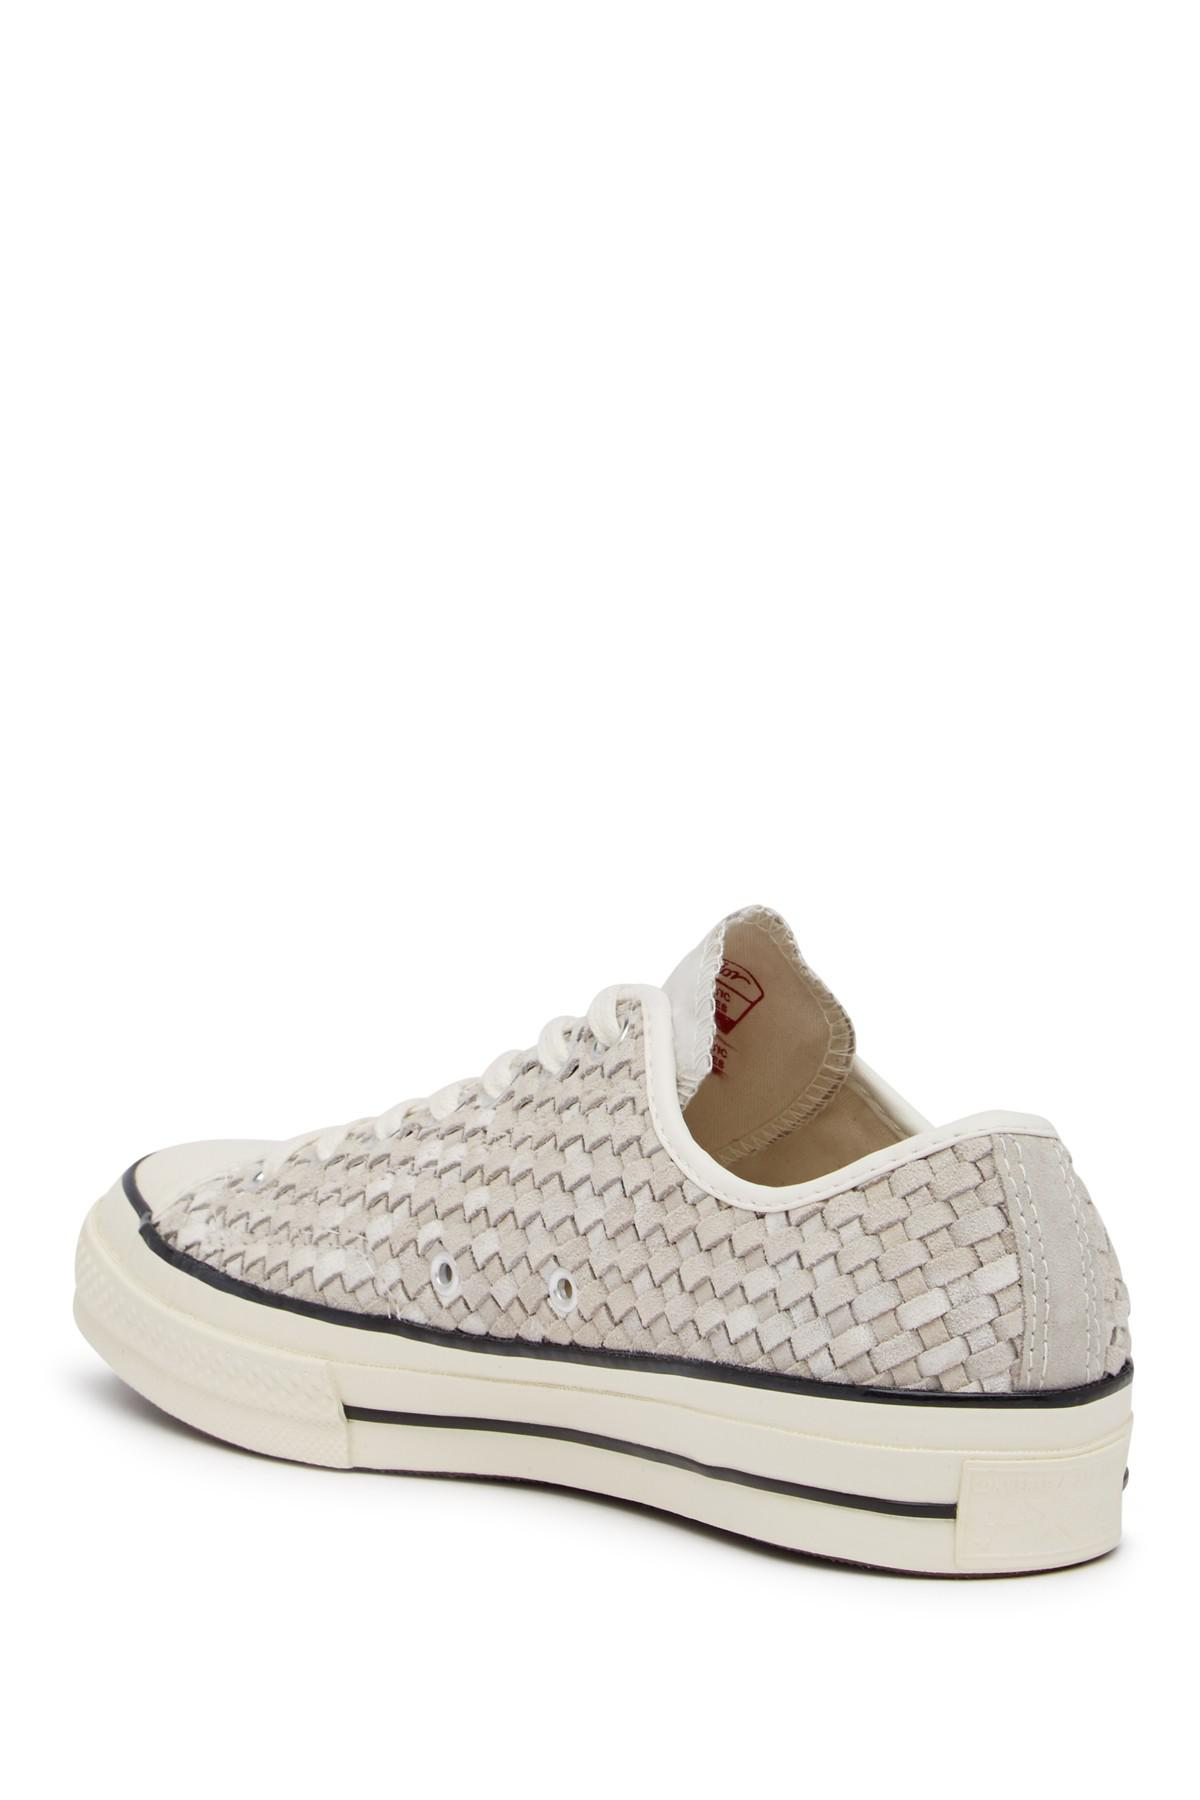 Converse Chuck Taylor All Star 70s Oxford Sneaker (Unisex) SeX5Yyyp